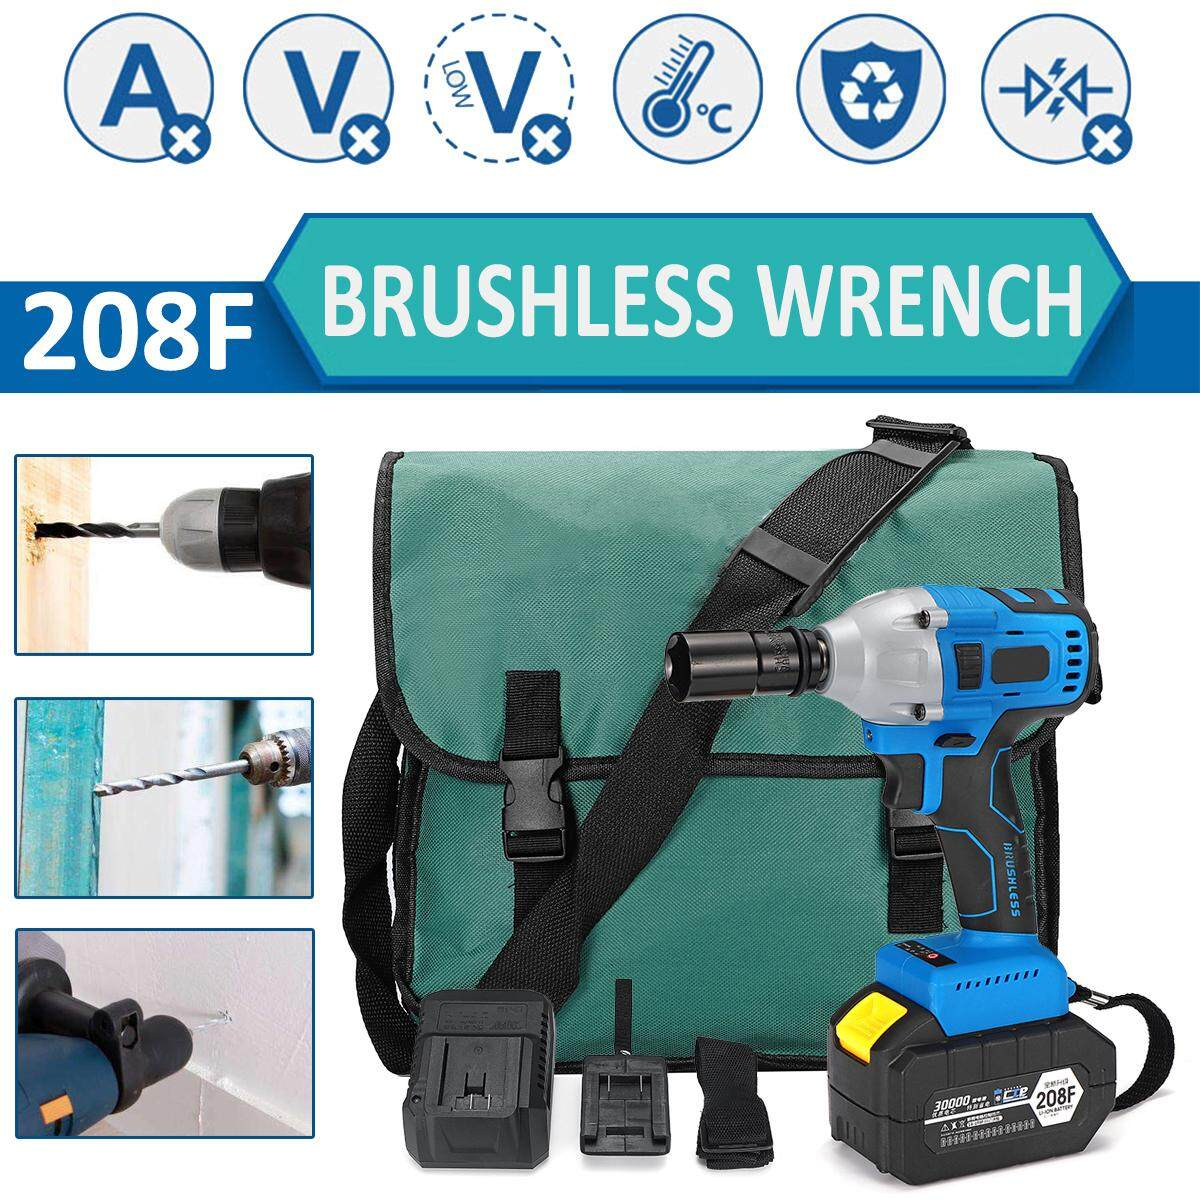 208F 1/2Brushless Cordless Electric Impact Wrench High Torque+30000mAh Battery